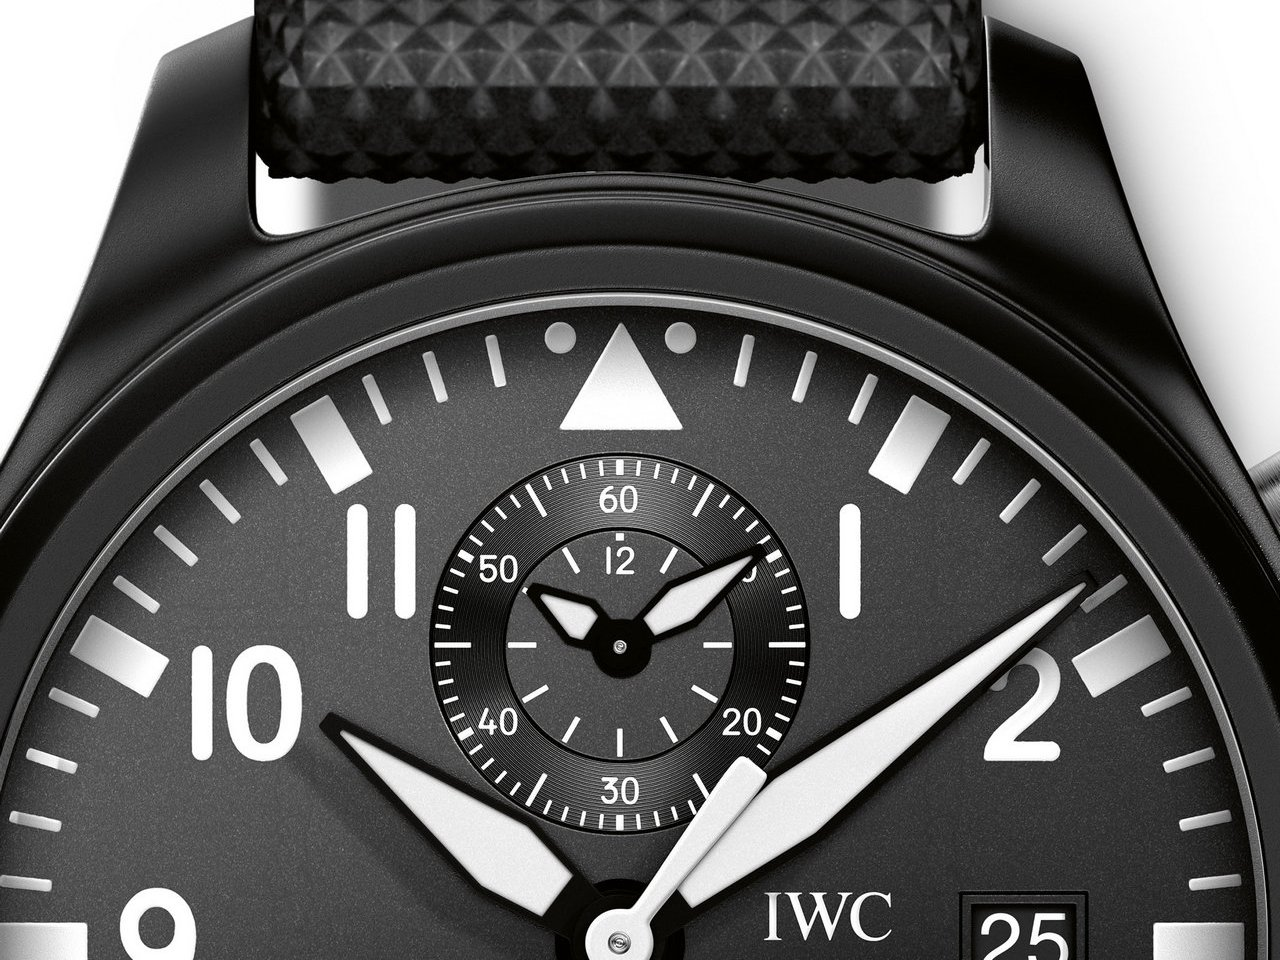 SIHH-2016-IWC Big-Pilot-Watch-Chronograph-TOP-GUN-ref-IW389001-0-100_3